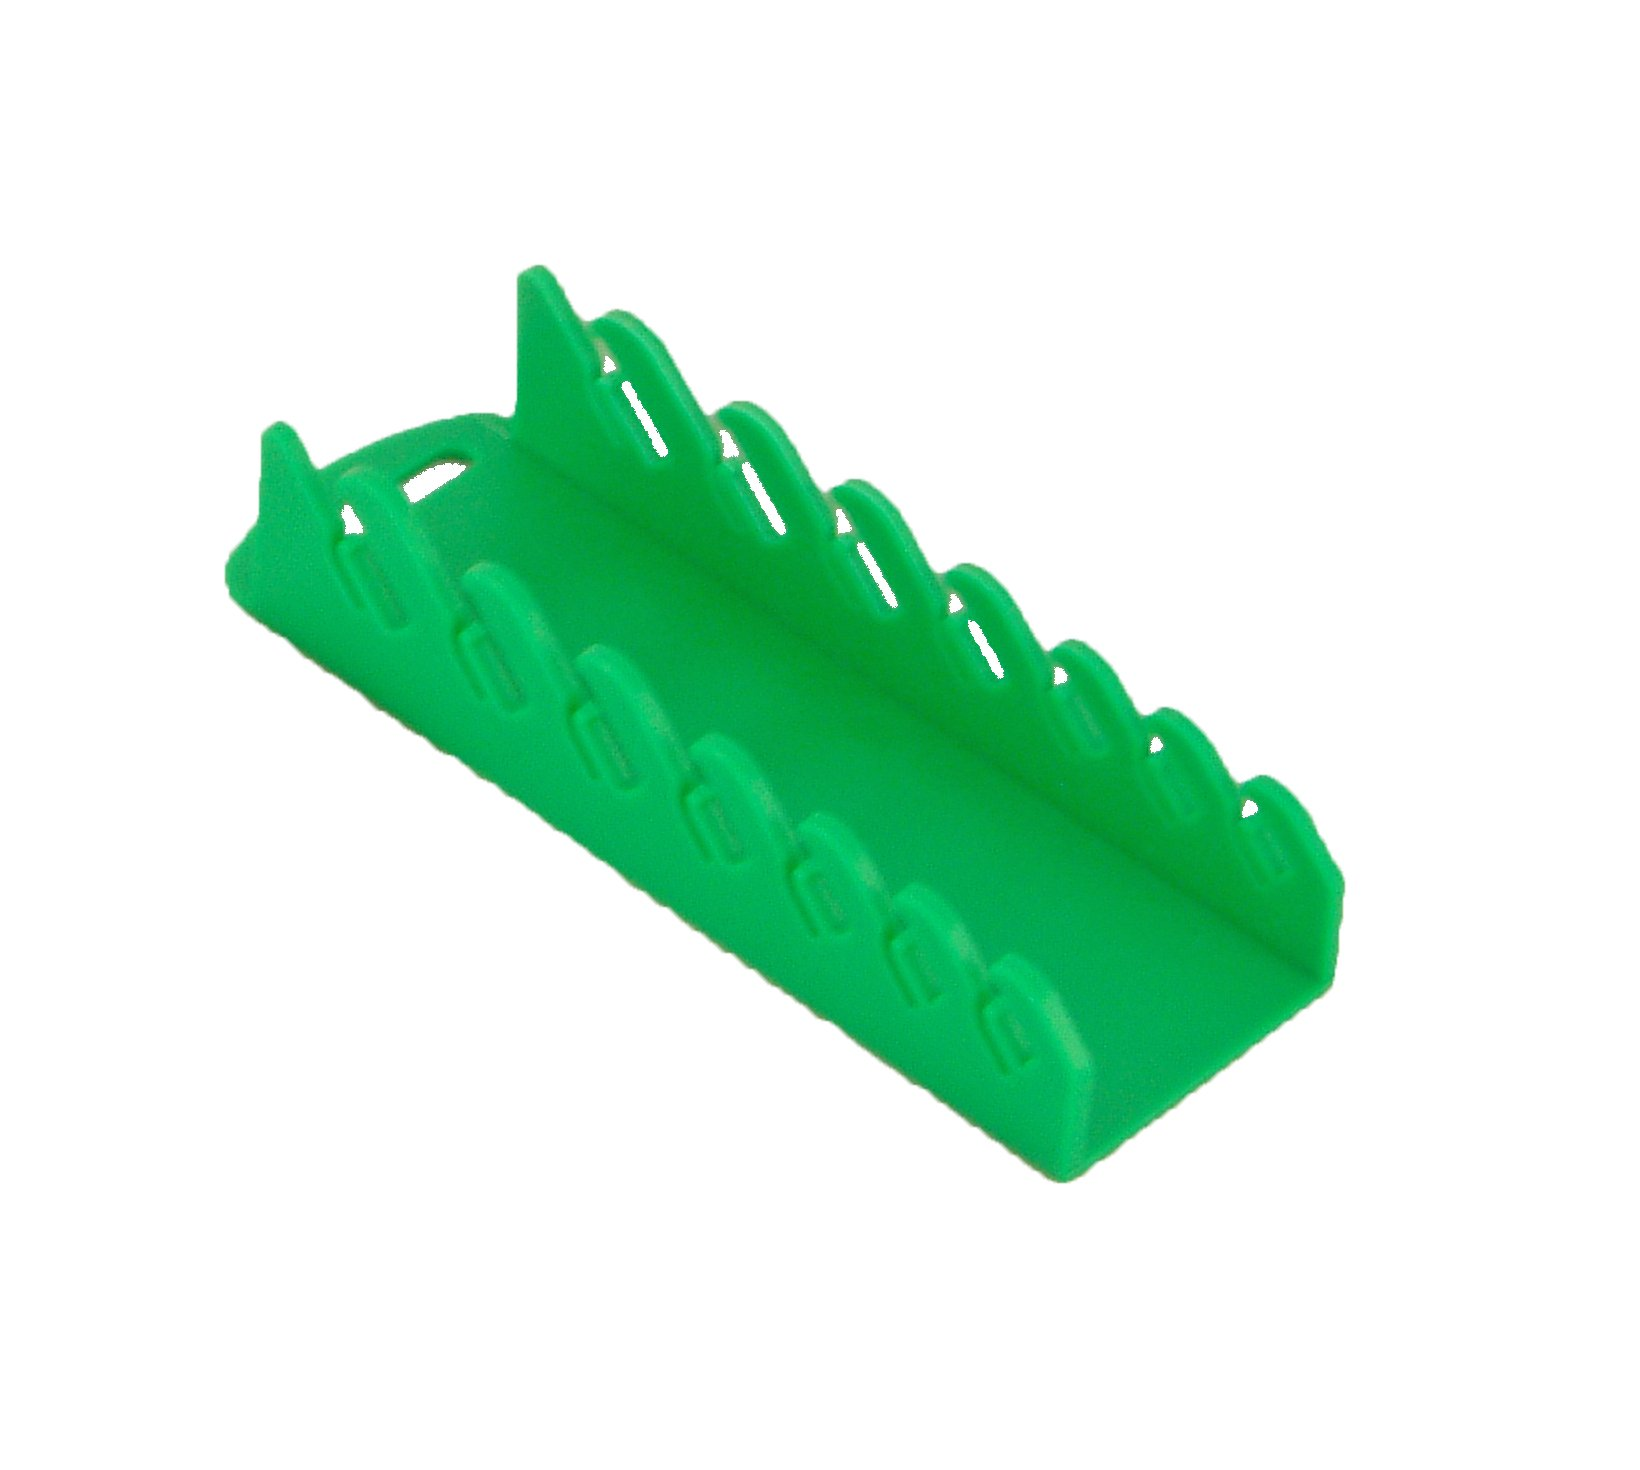 Protoco 5041 Stubby Wrench Rack, Green Magnetic, 7-Piece